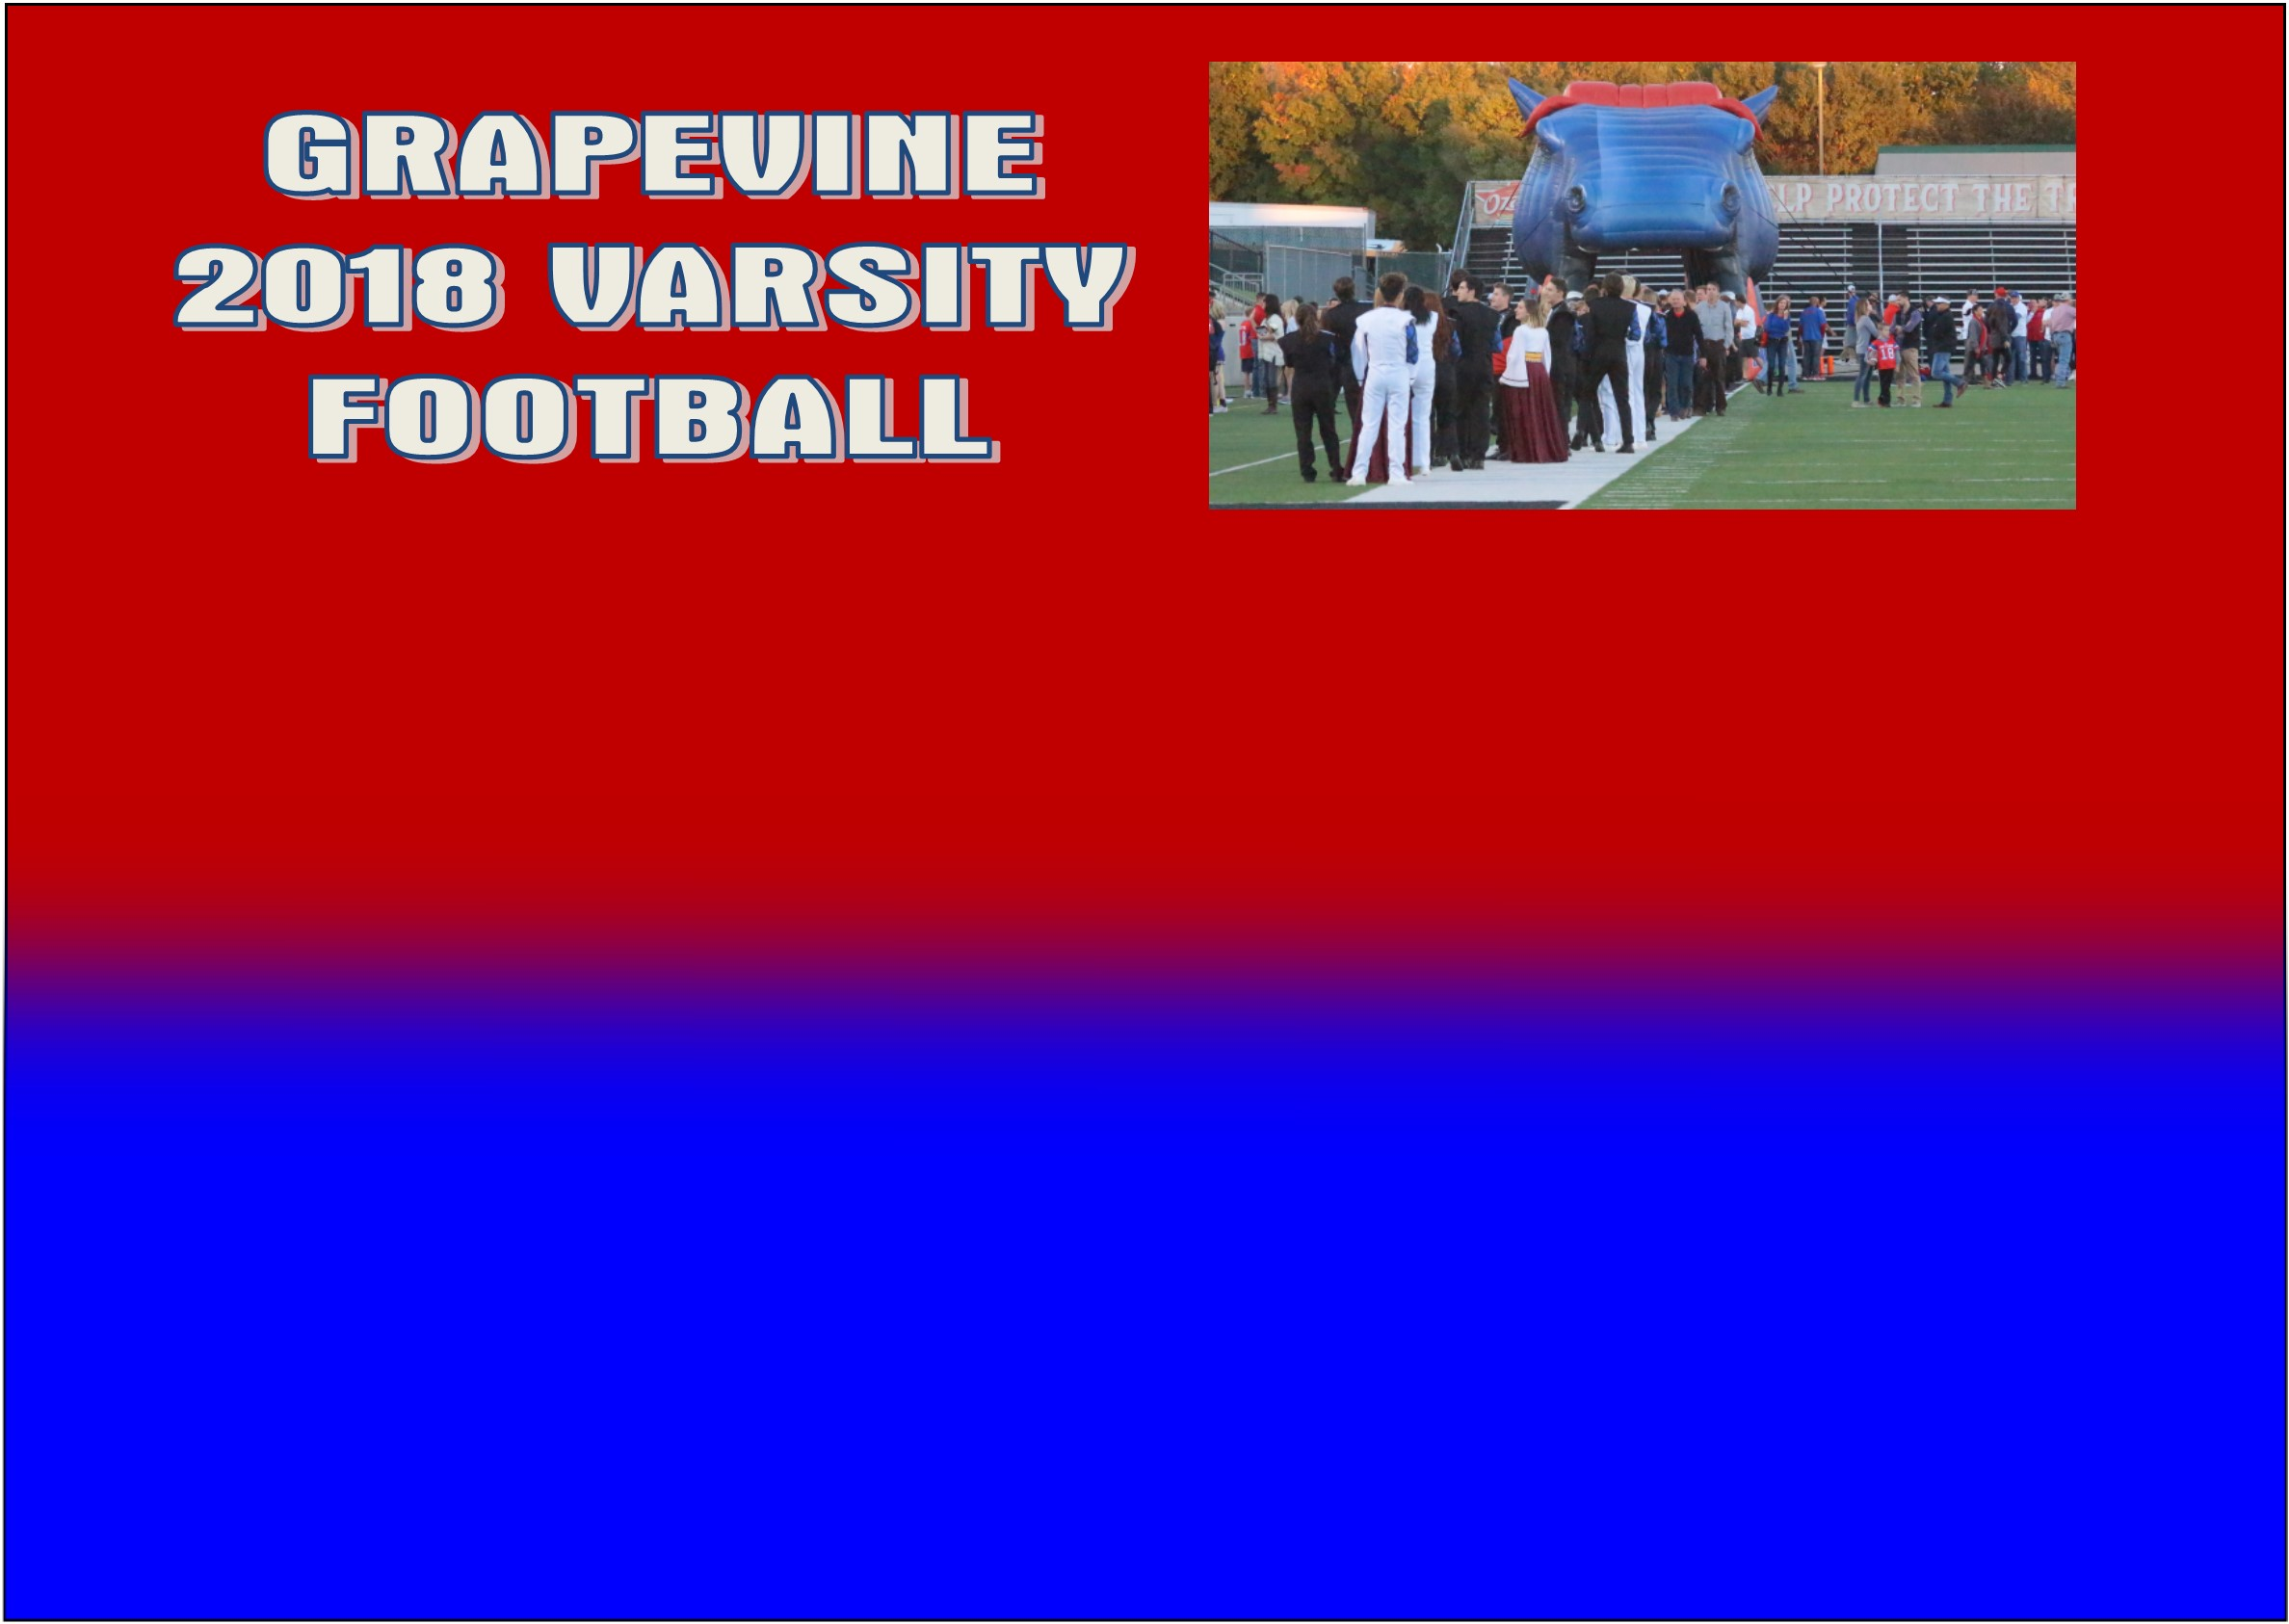 Grapevine Mustangs Defeated by Denton Ryan Raiders in District Game 52-7